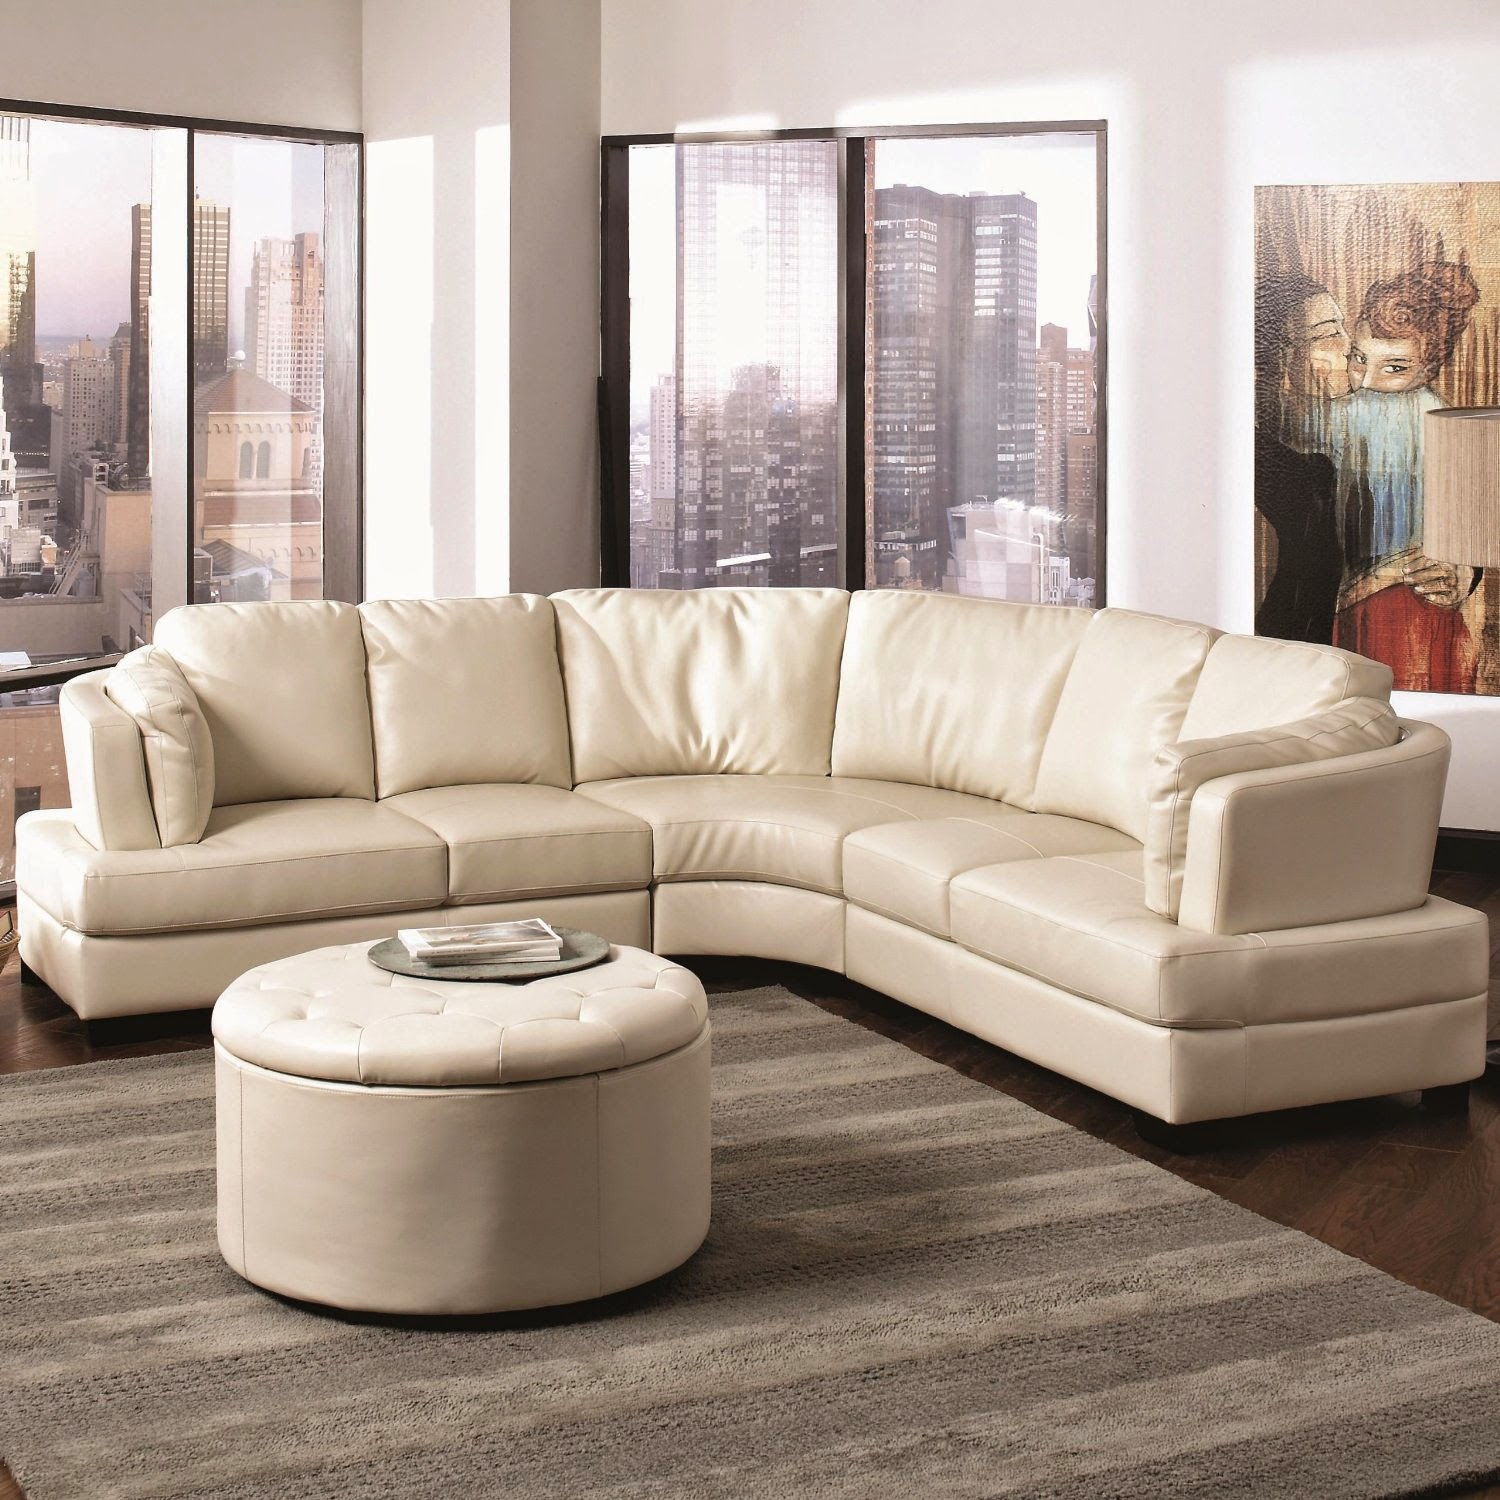 Curved sofa website reviews curved leather sofa for sale for Couches and sofas for sale